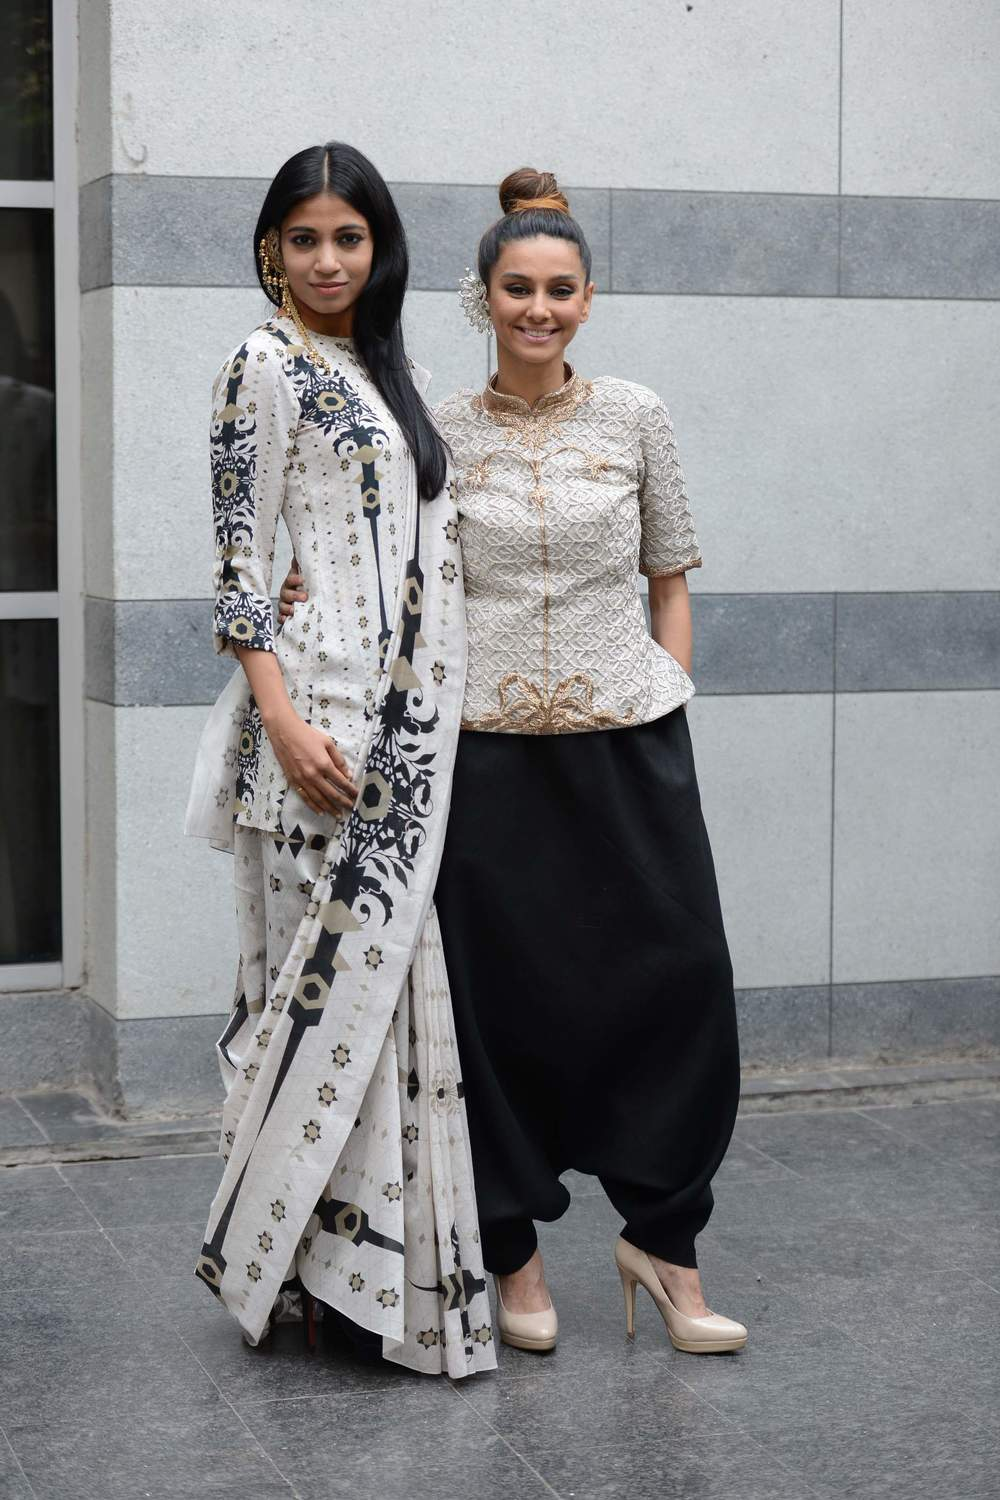 Shibani Dandekar and Bhagyashree Raut dressed in Lady Sahara by Payal Singhal